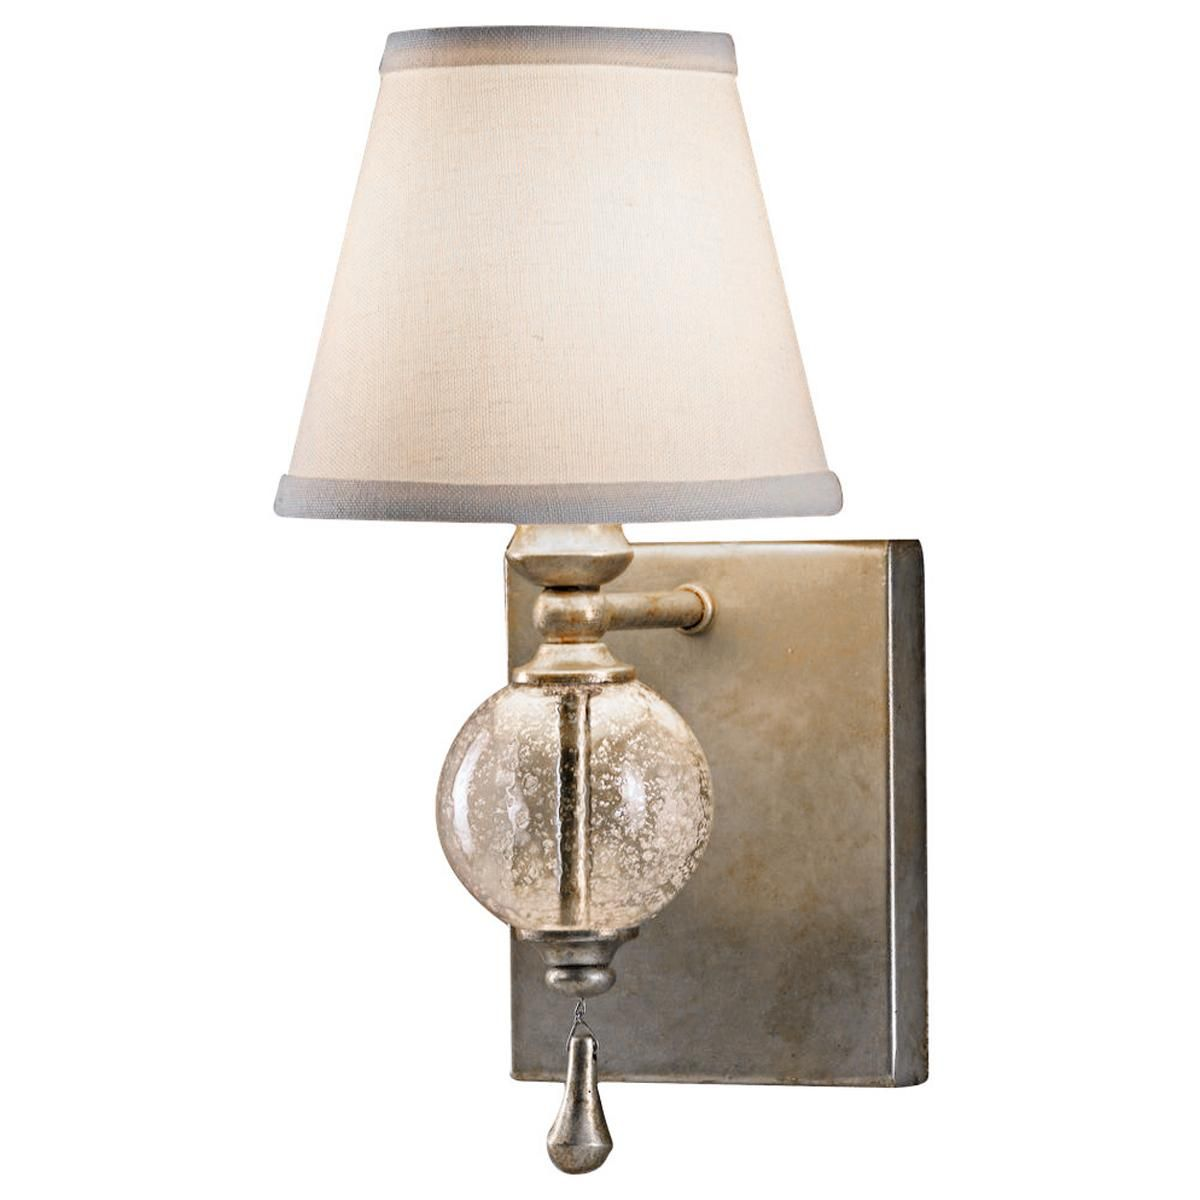 Classic Glass Ball Wall Sconce Traditional Wall Lighting Wall Sconce Lighting Wall Lights